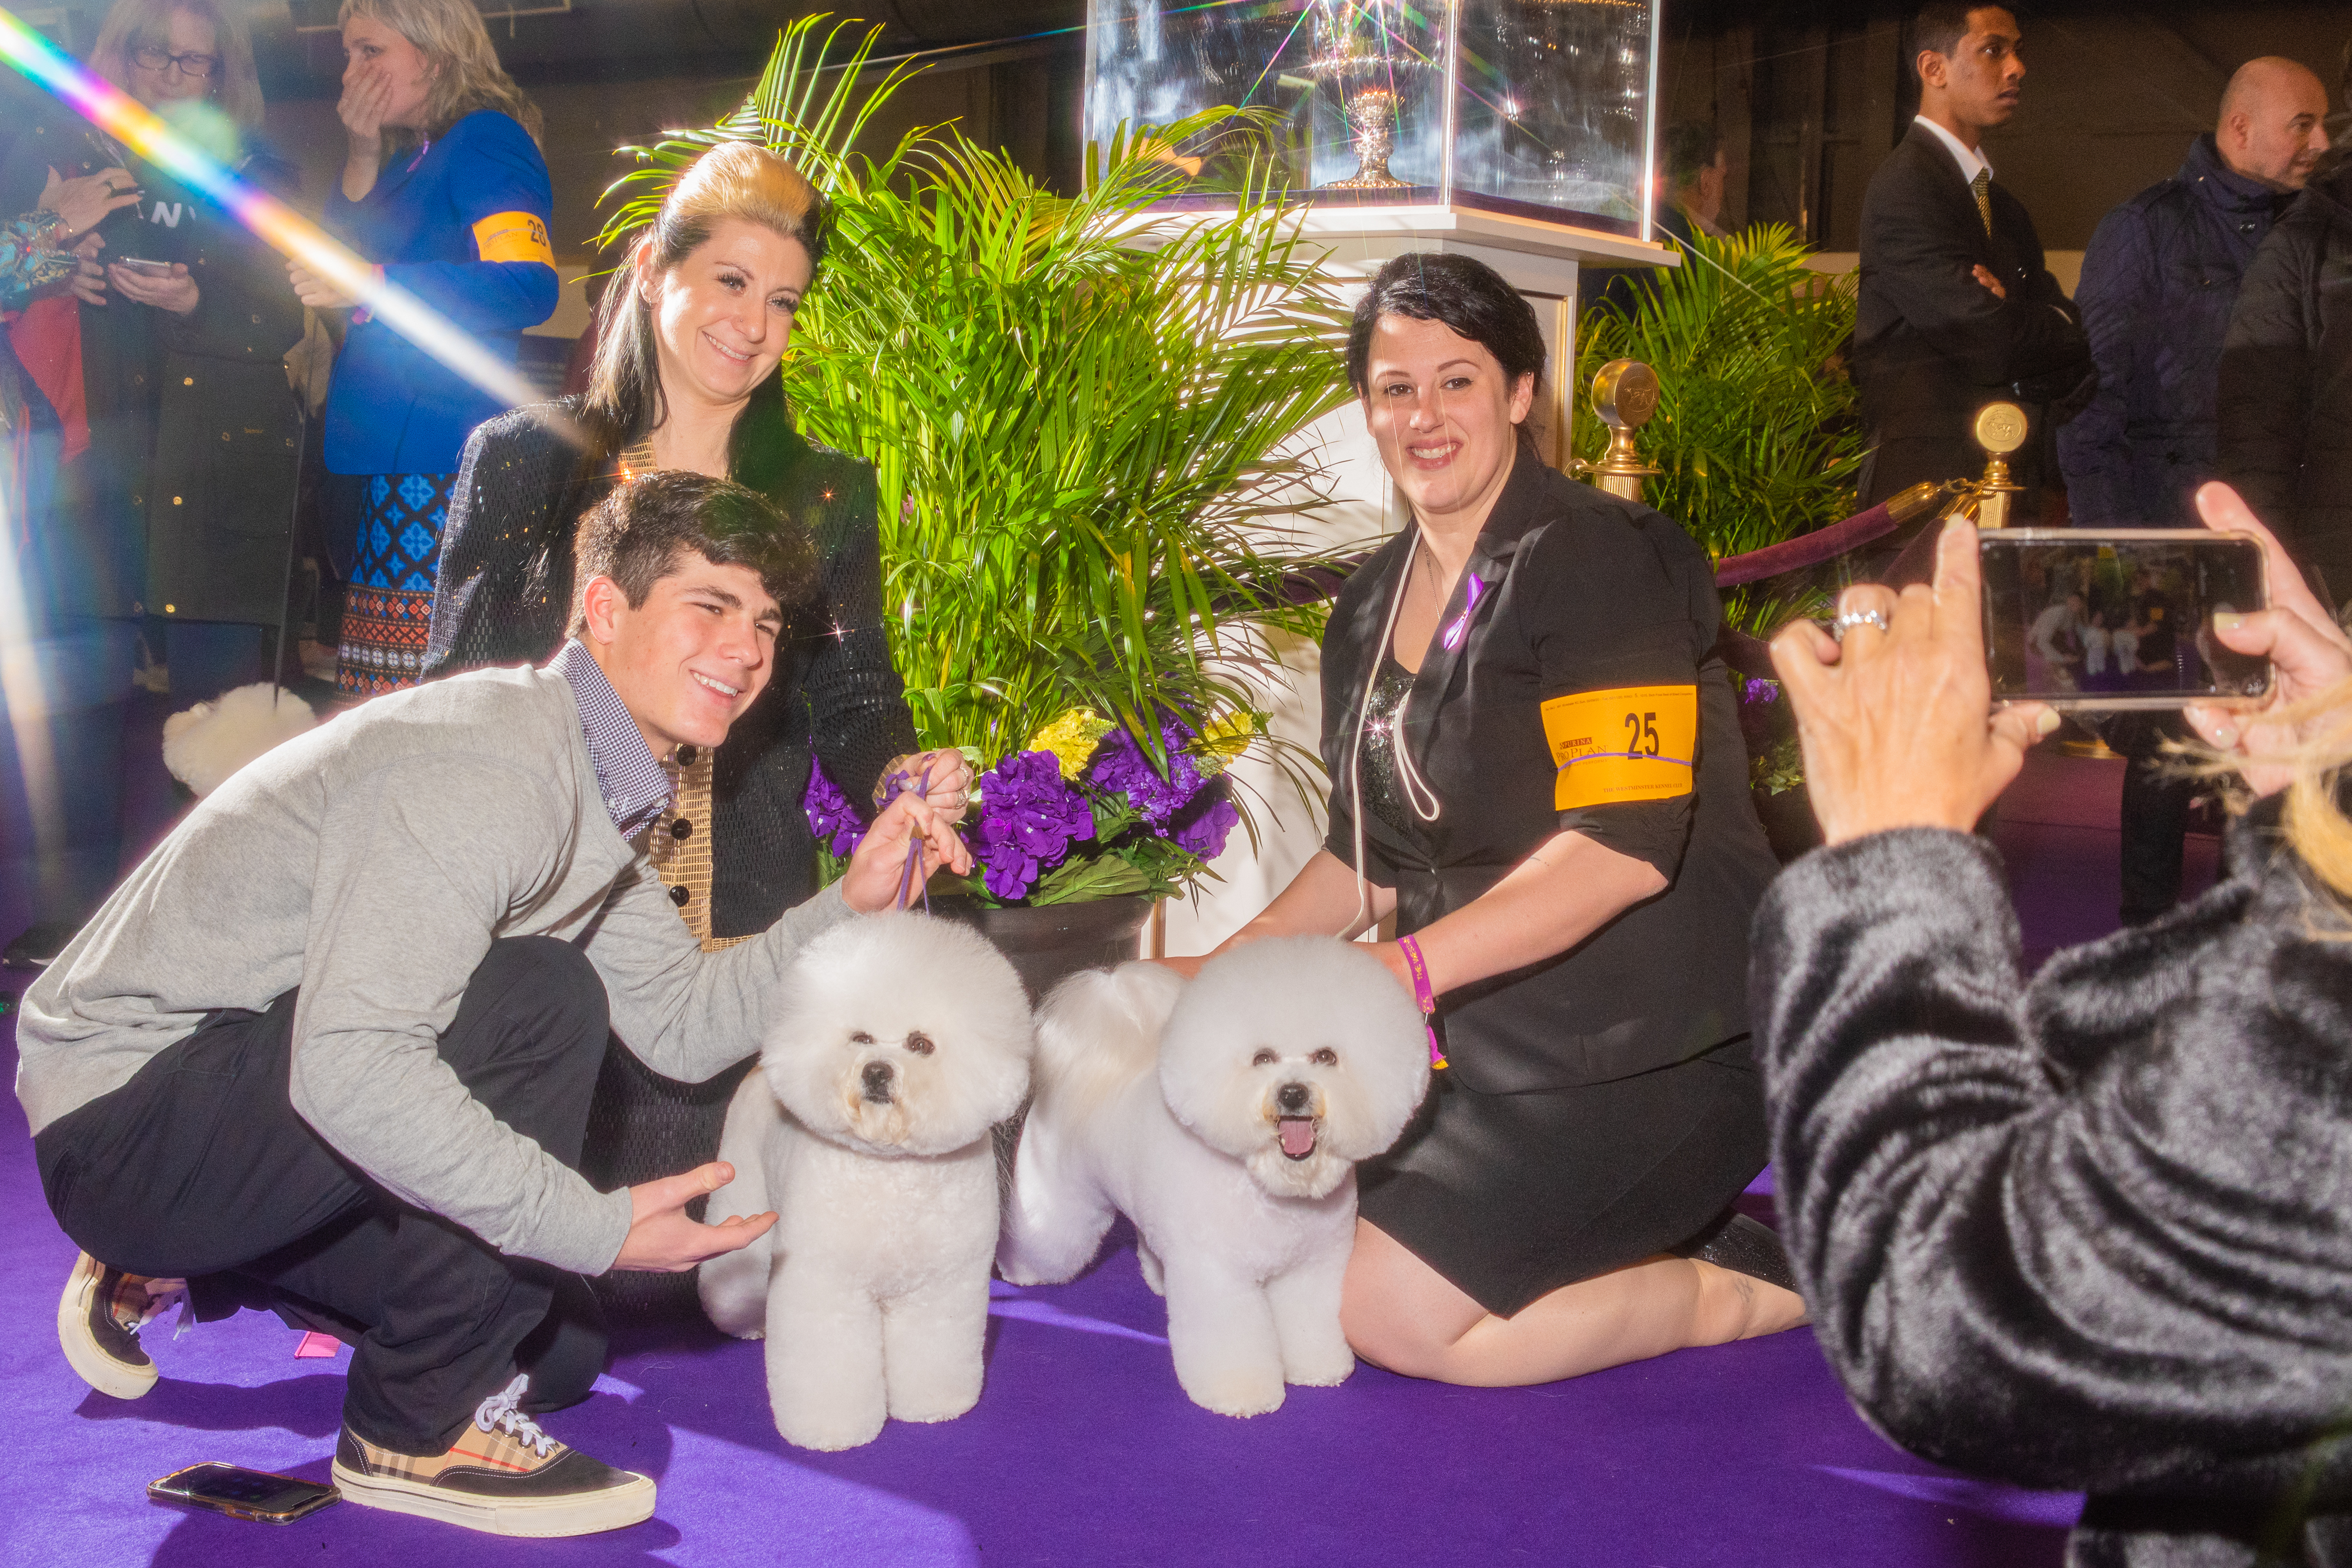 Attendees, photographed using a star filter, pose with two Bichons